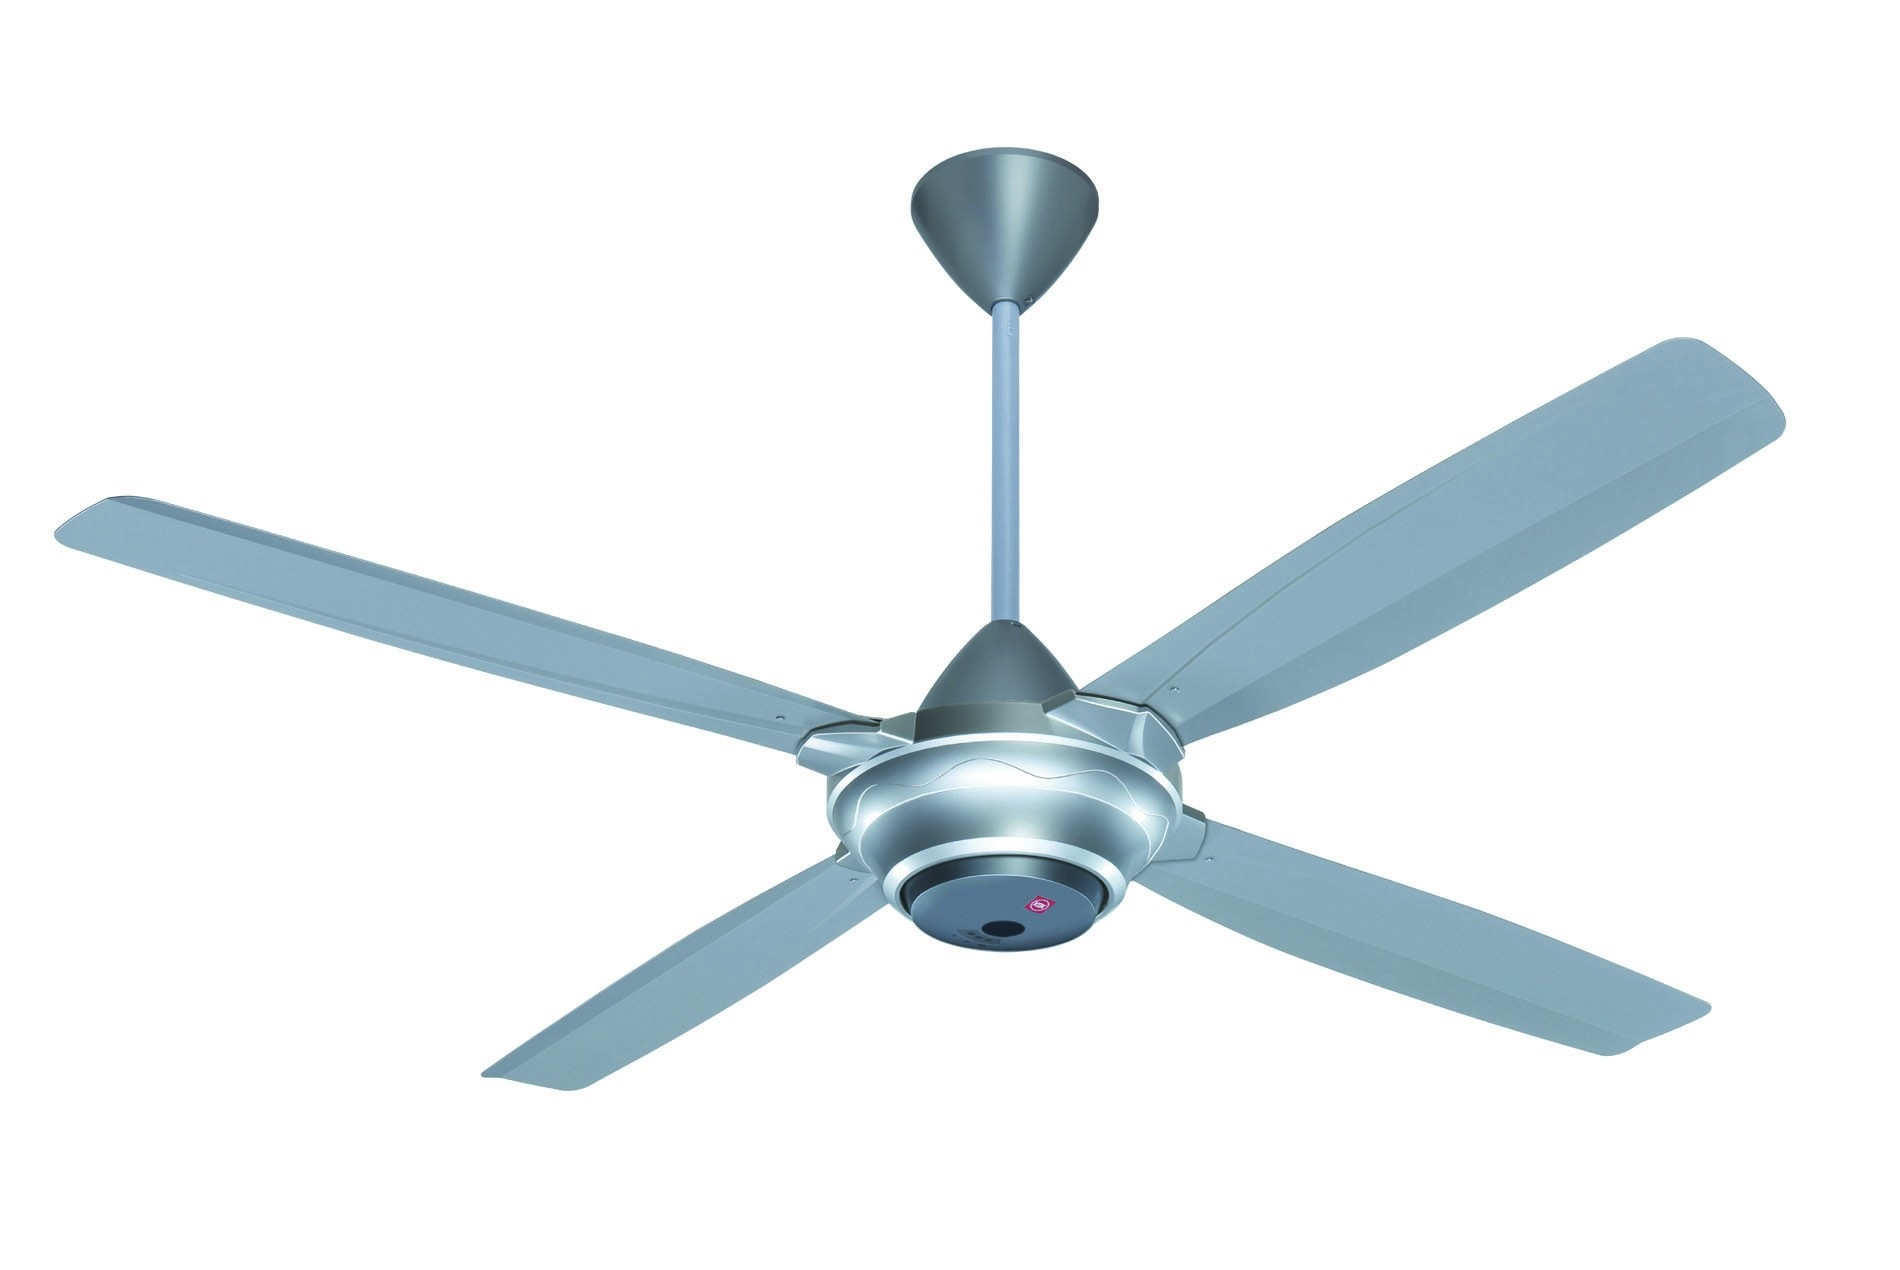 KDK 4 Blade Ceiling Fan 140CM With Remote, M56SR